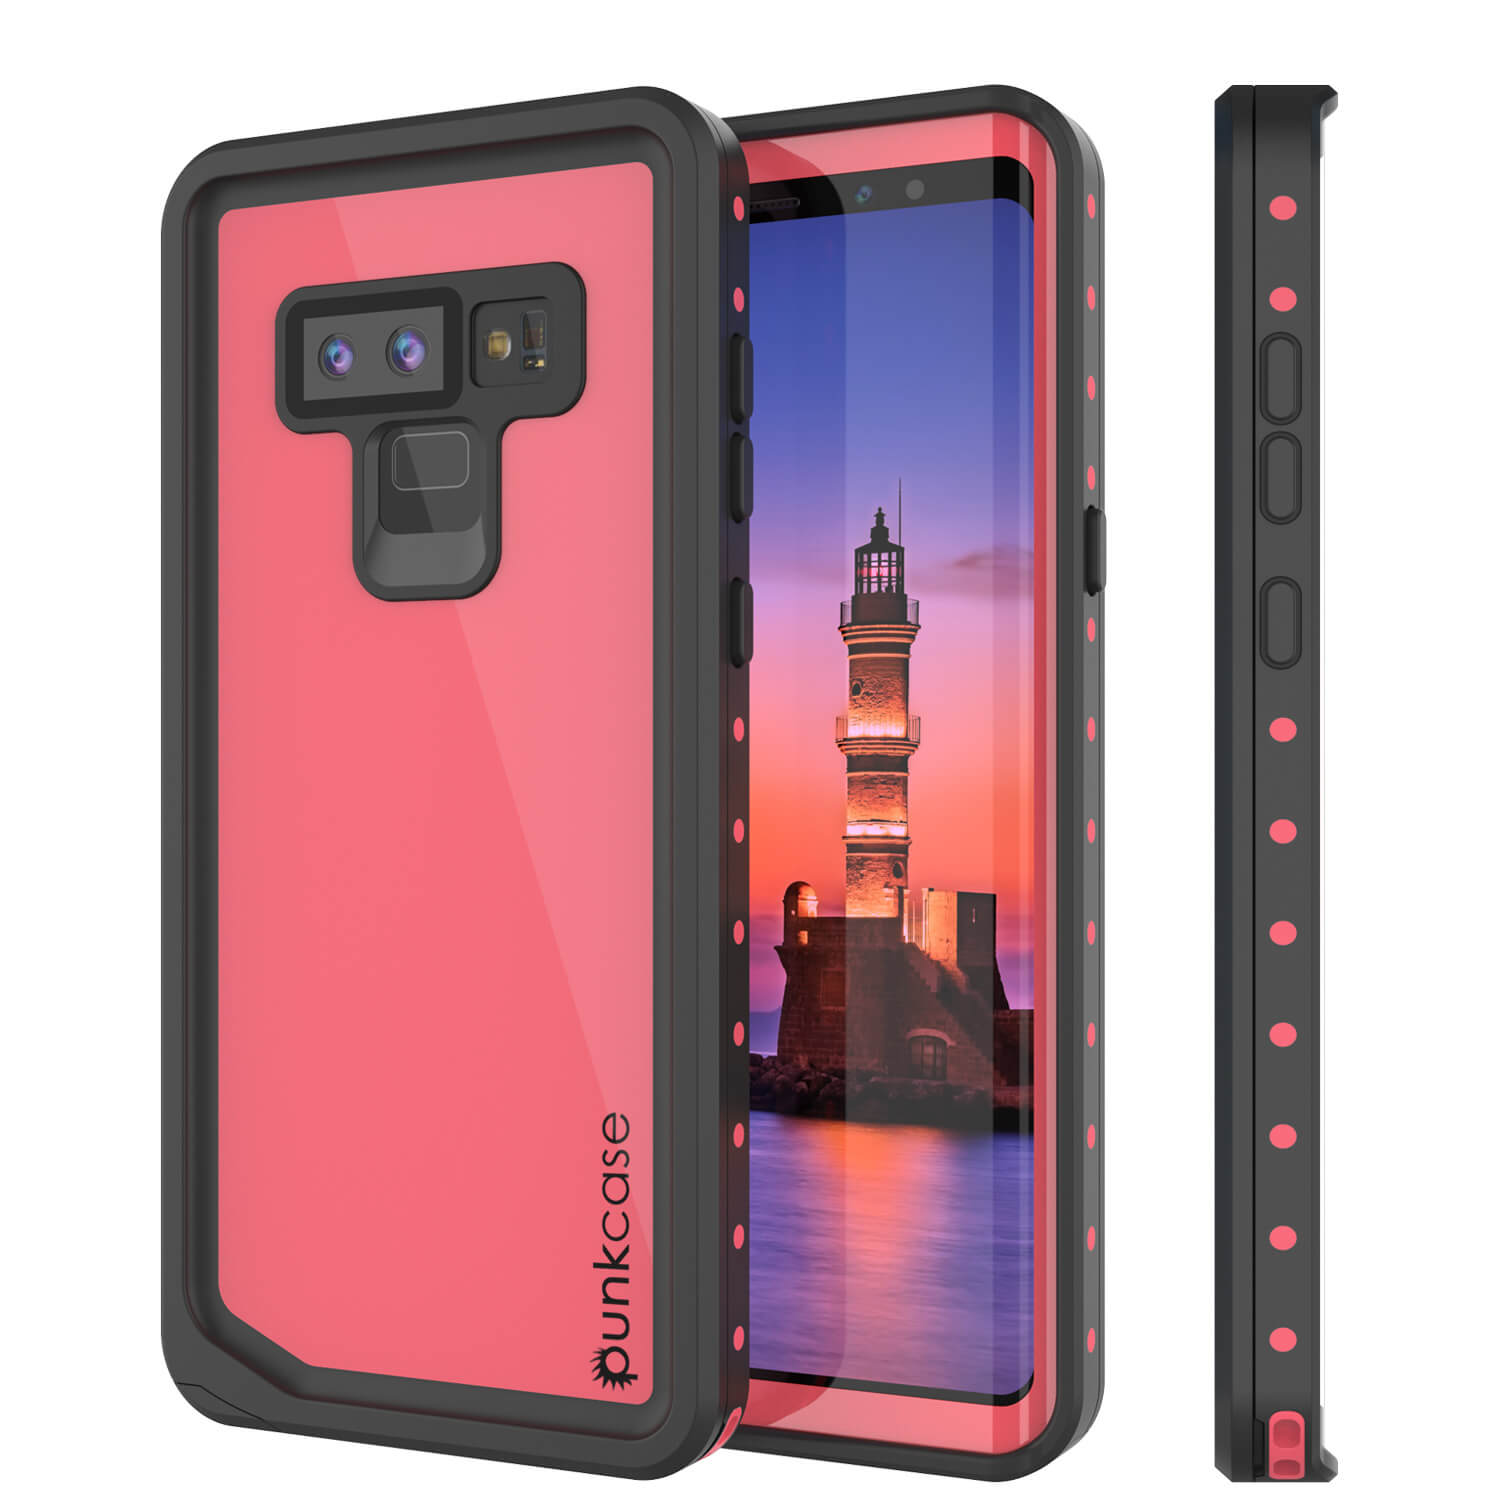 Galaxy Note 9 Waterproof Case, Punkcase Studstar Pink Thin Armor Cover